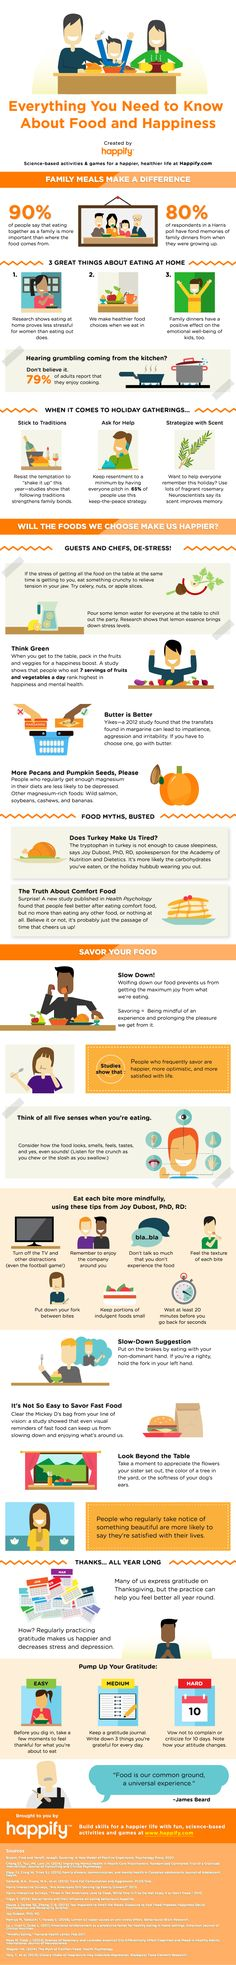 Infographic: Everything You Need to Know about Food and Happiness by happify via thedailymeal: Eating together and cooking together (and choosing butter over margarine) can keep you and your family happier in the long run. #Infographic #Food #Happiness